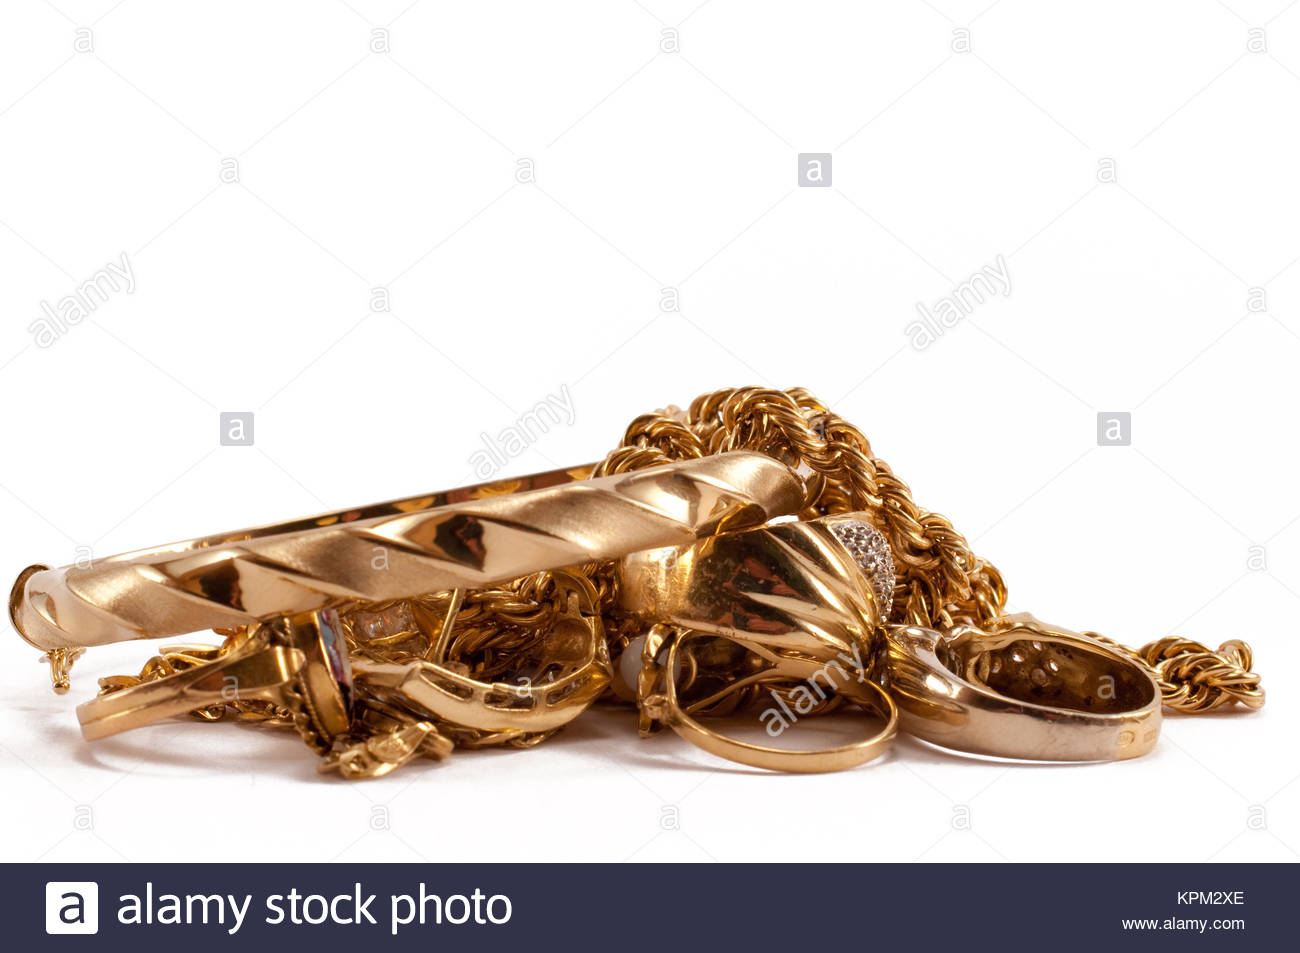 scrap gold jewellery including chains, bracelets and rings on a white background - Stock Image